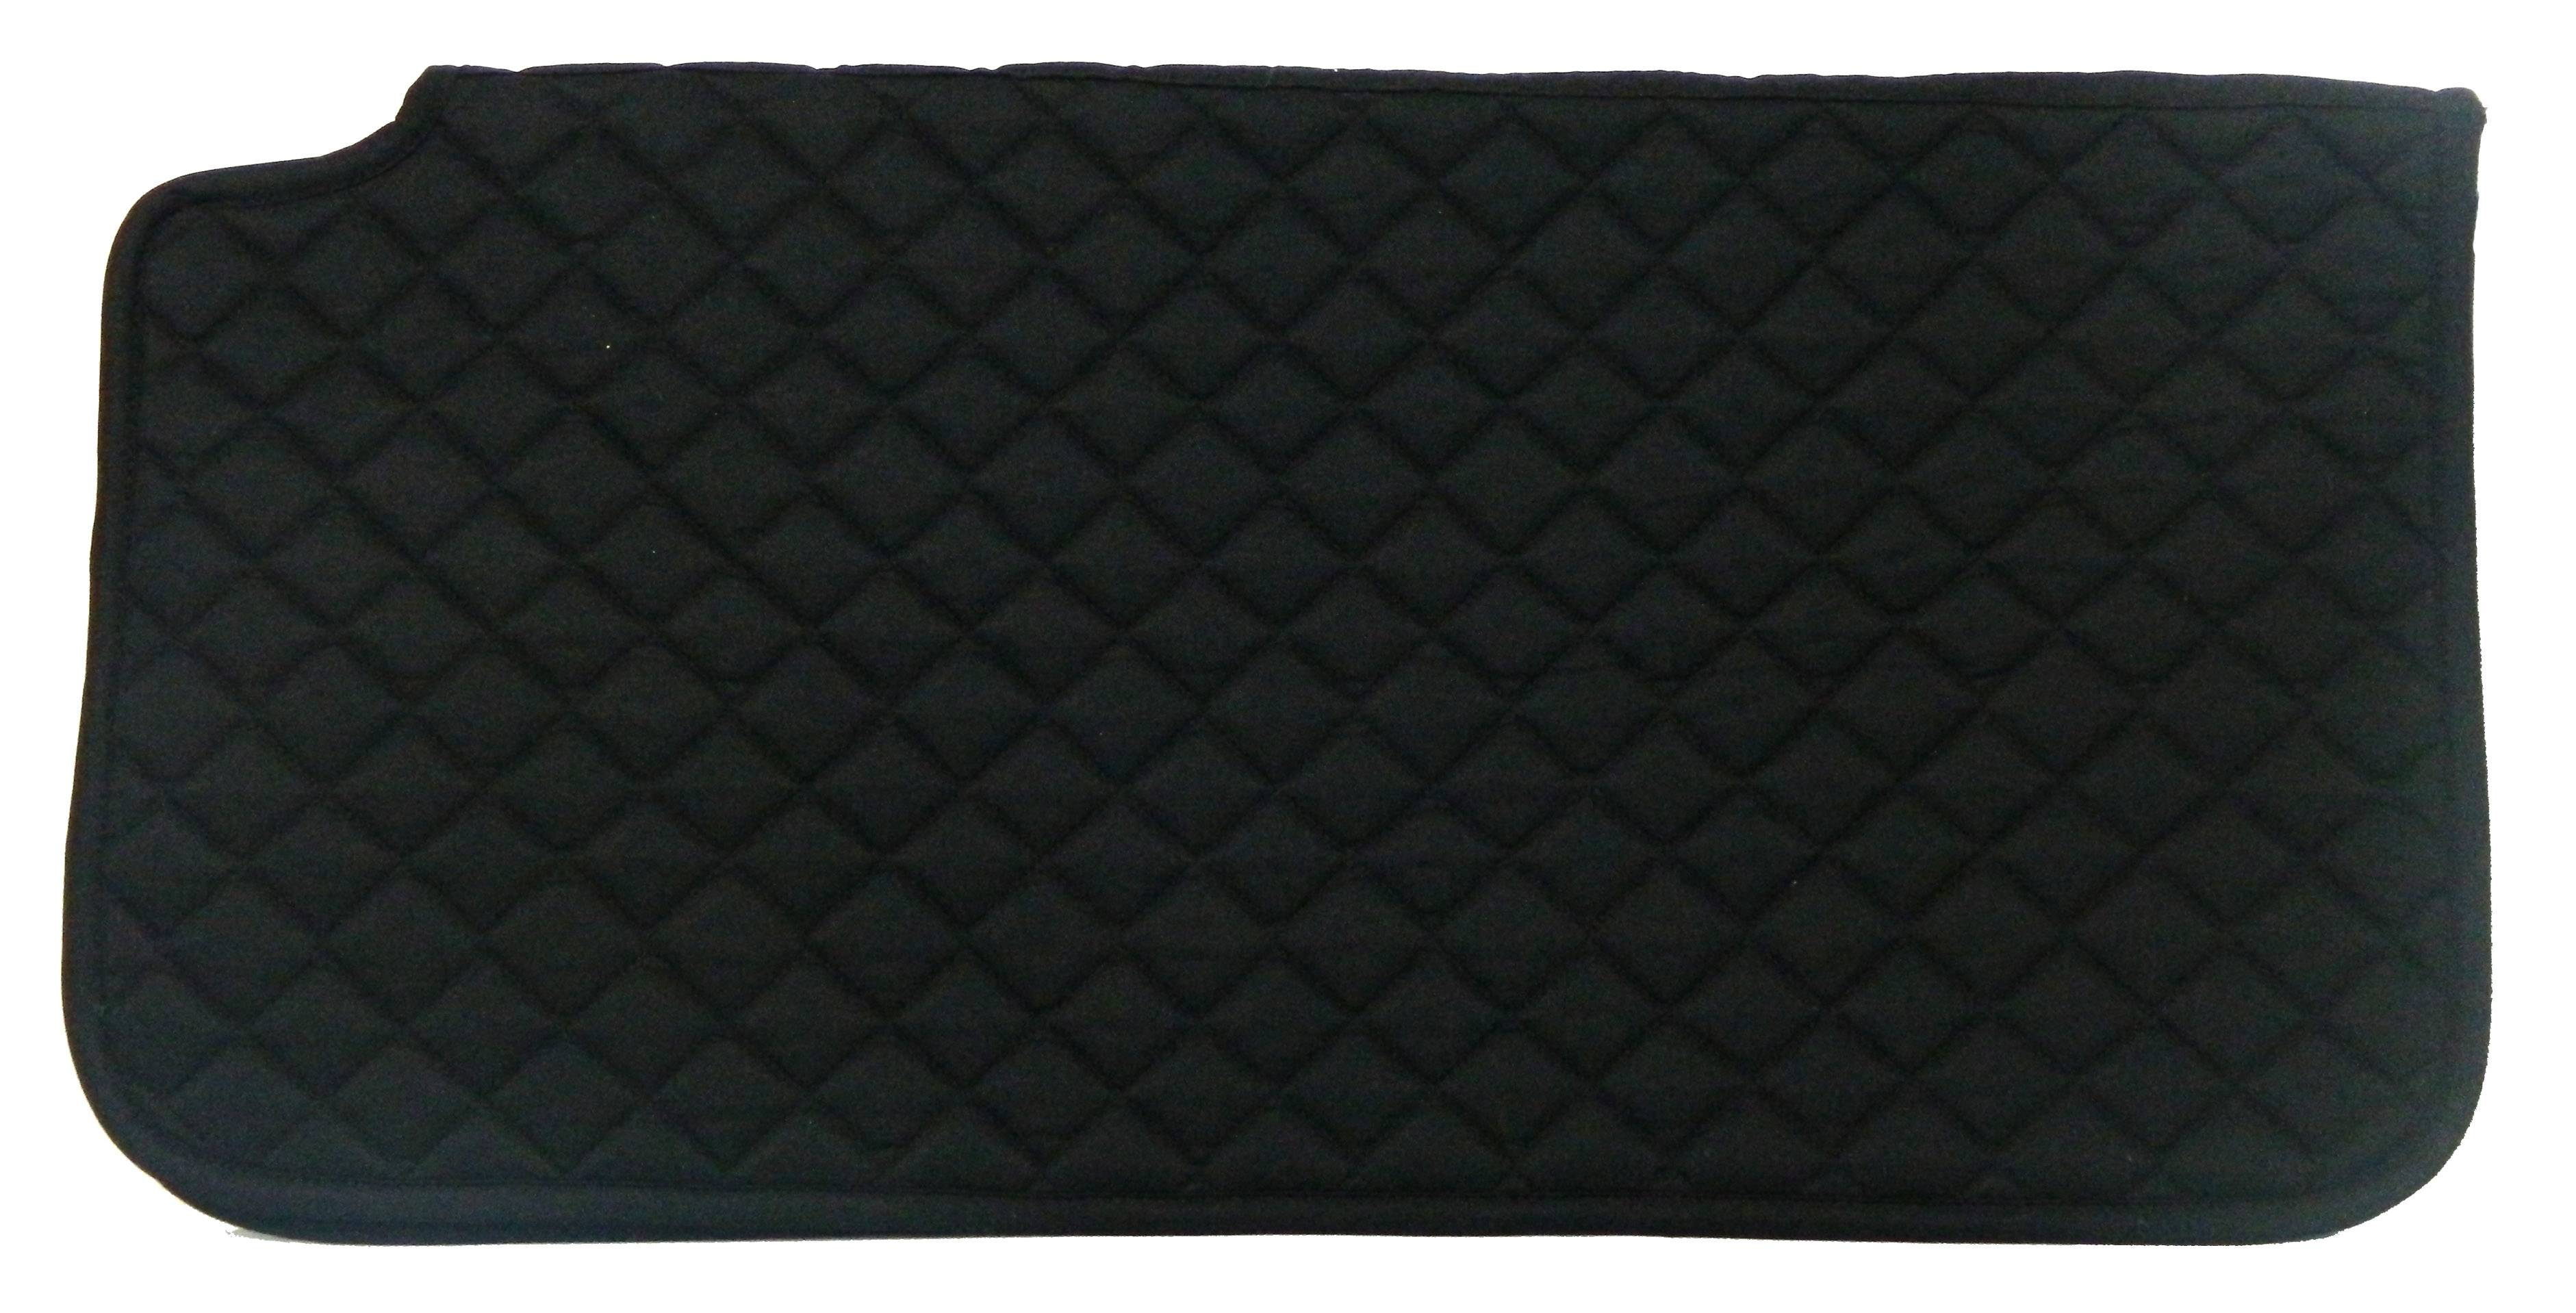 Lami-Cell Western Saddle Pad